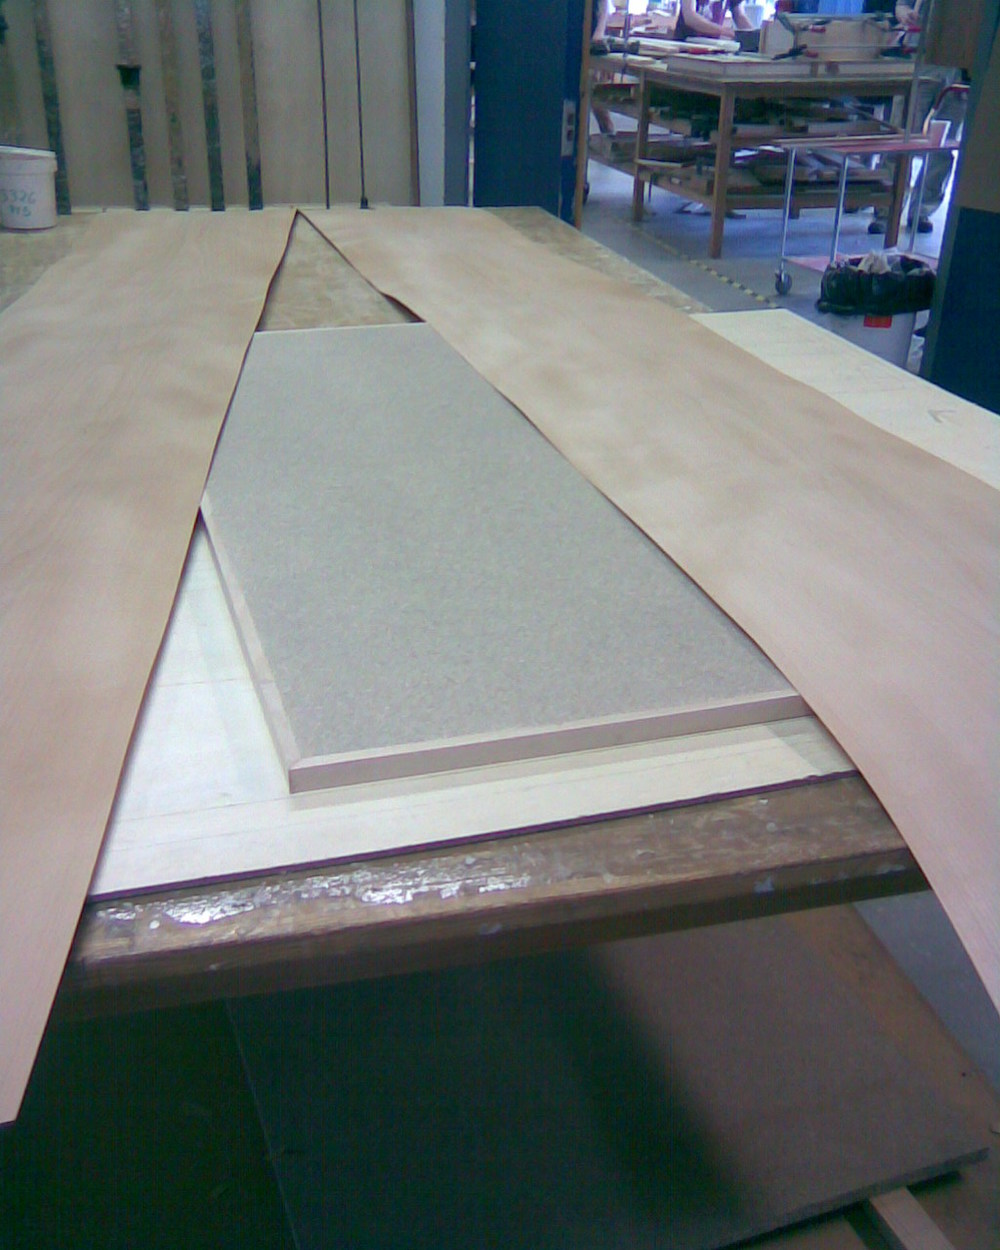 March '13 / Cabinet Maker School / Copenhagen Desk project. Laying beech veneer and edge boards